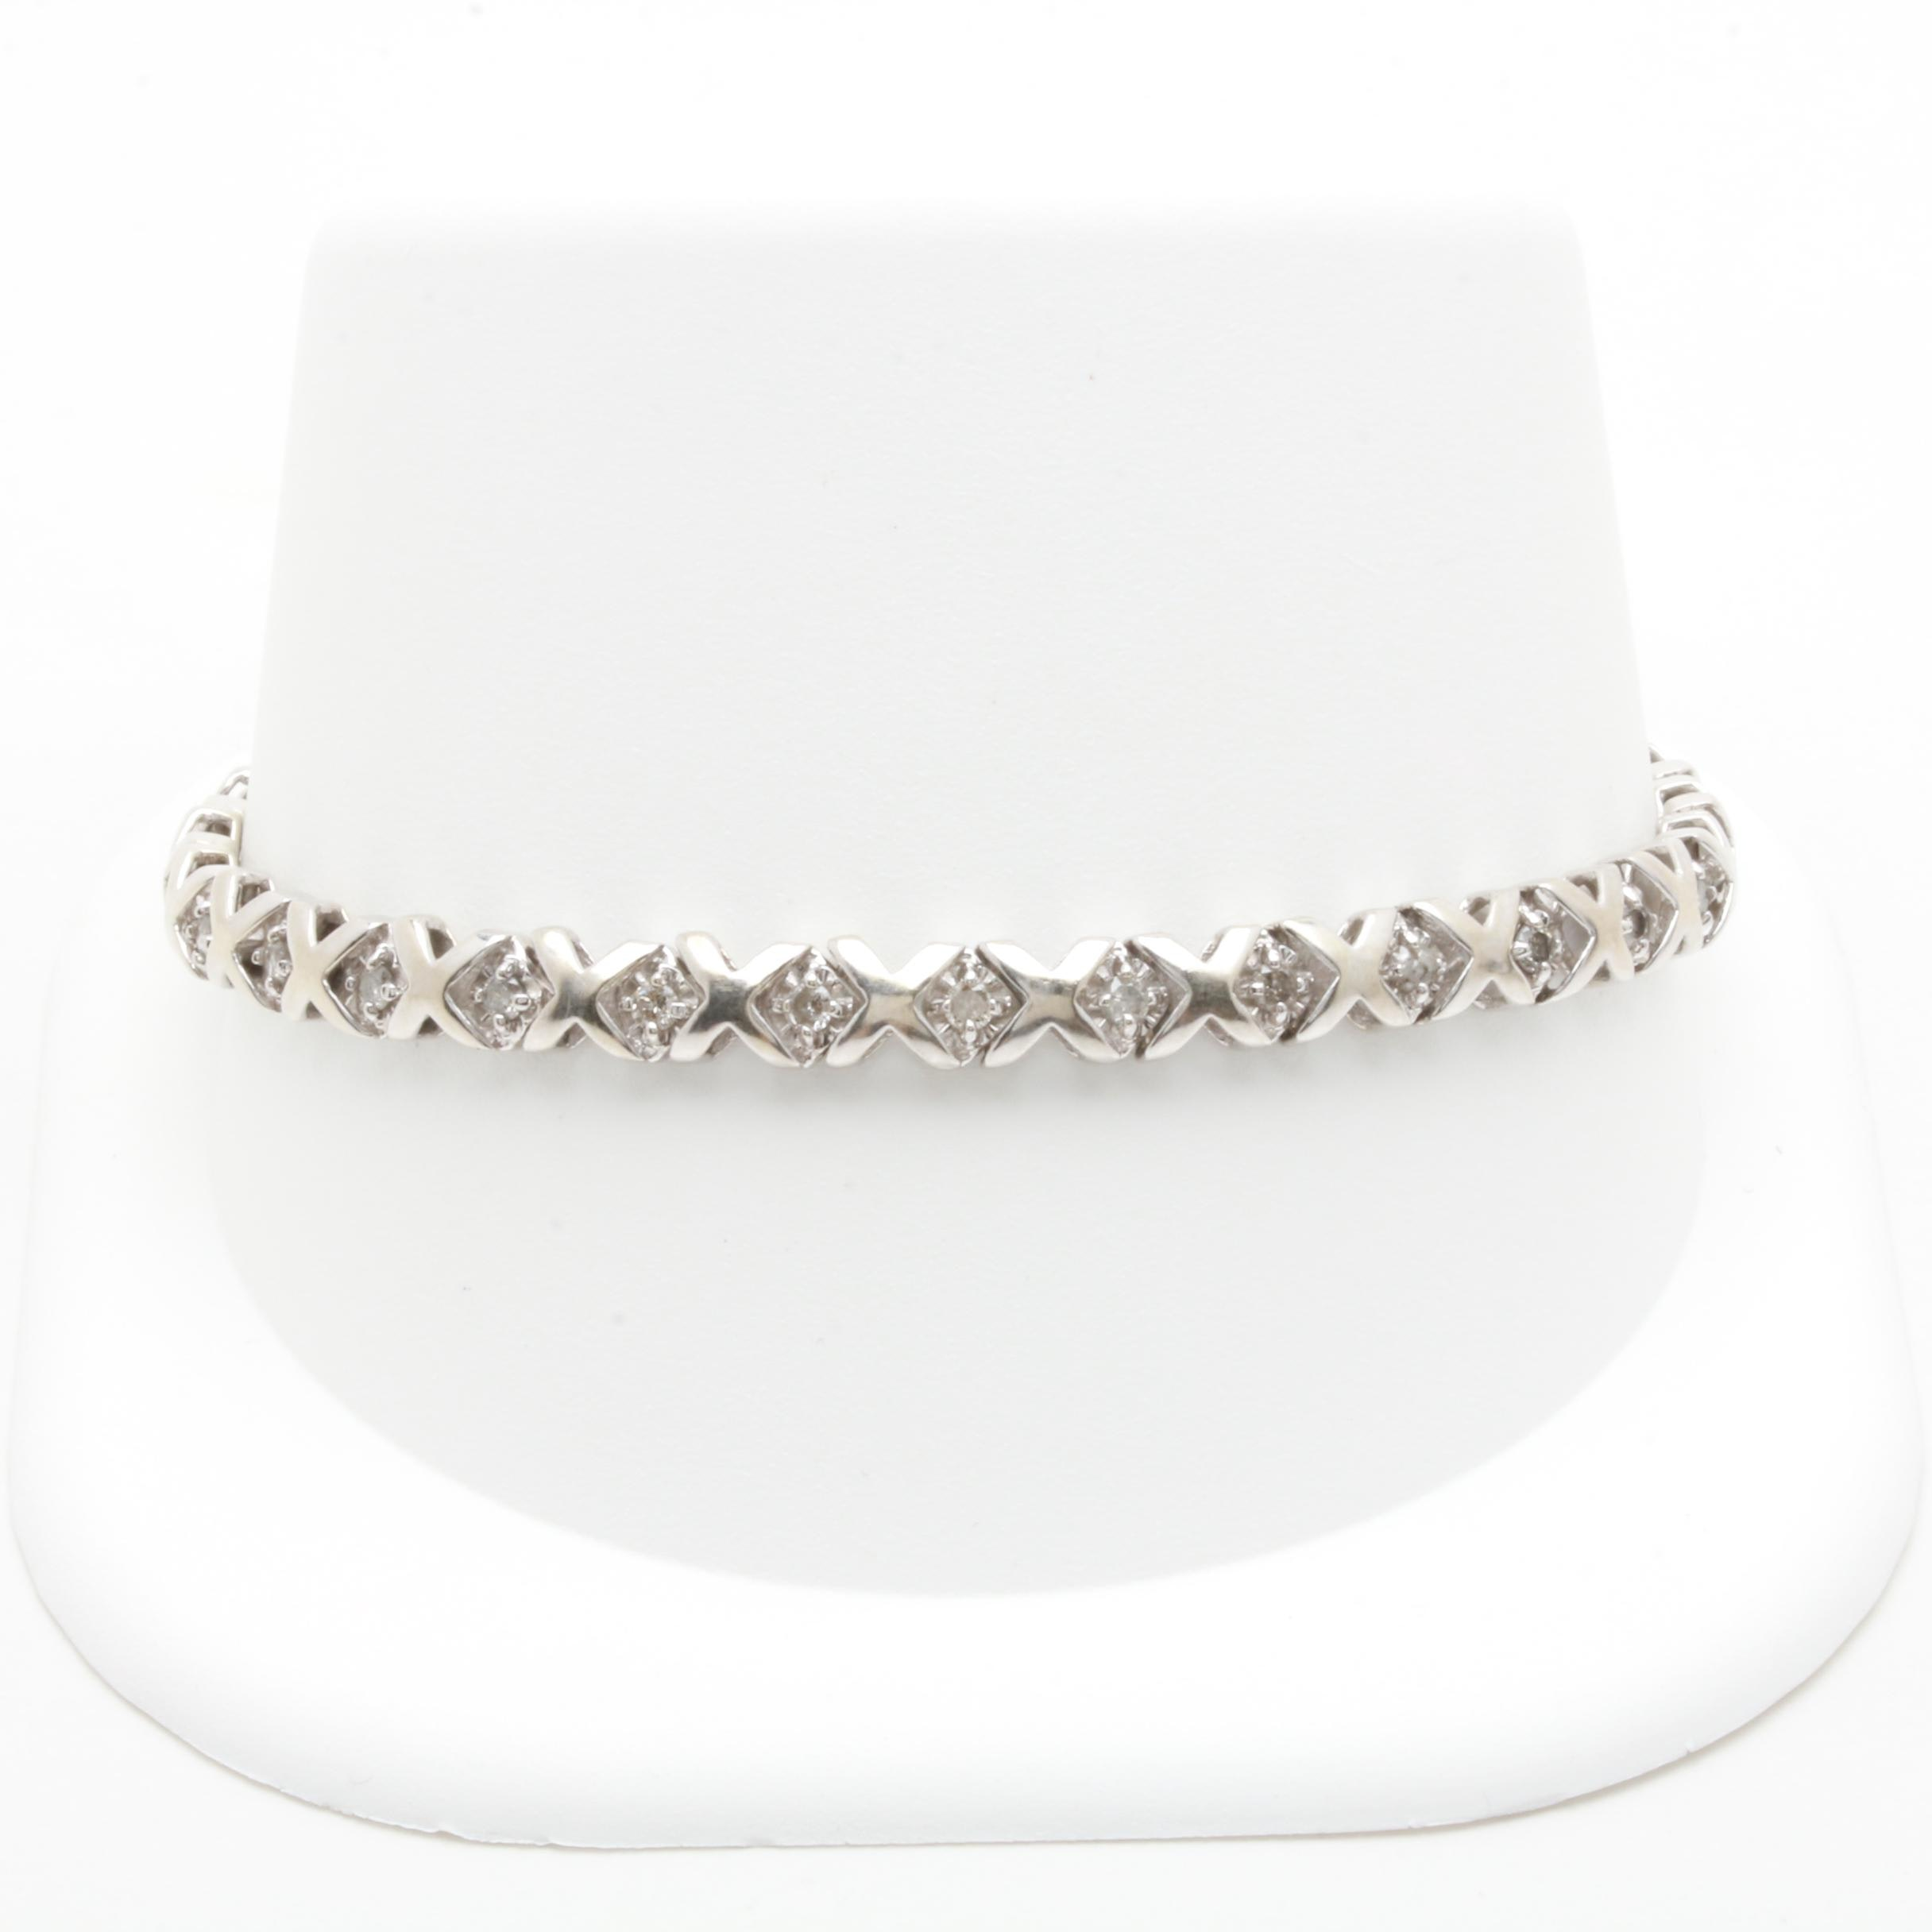 10K White Gold Diamond Link Bracelet